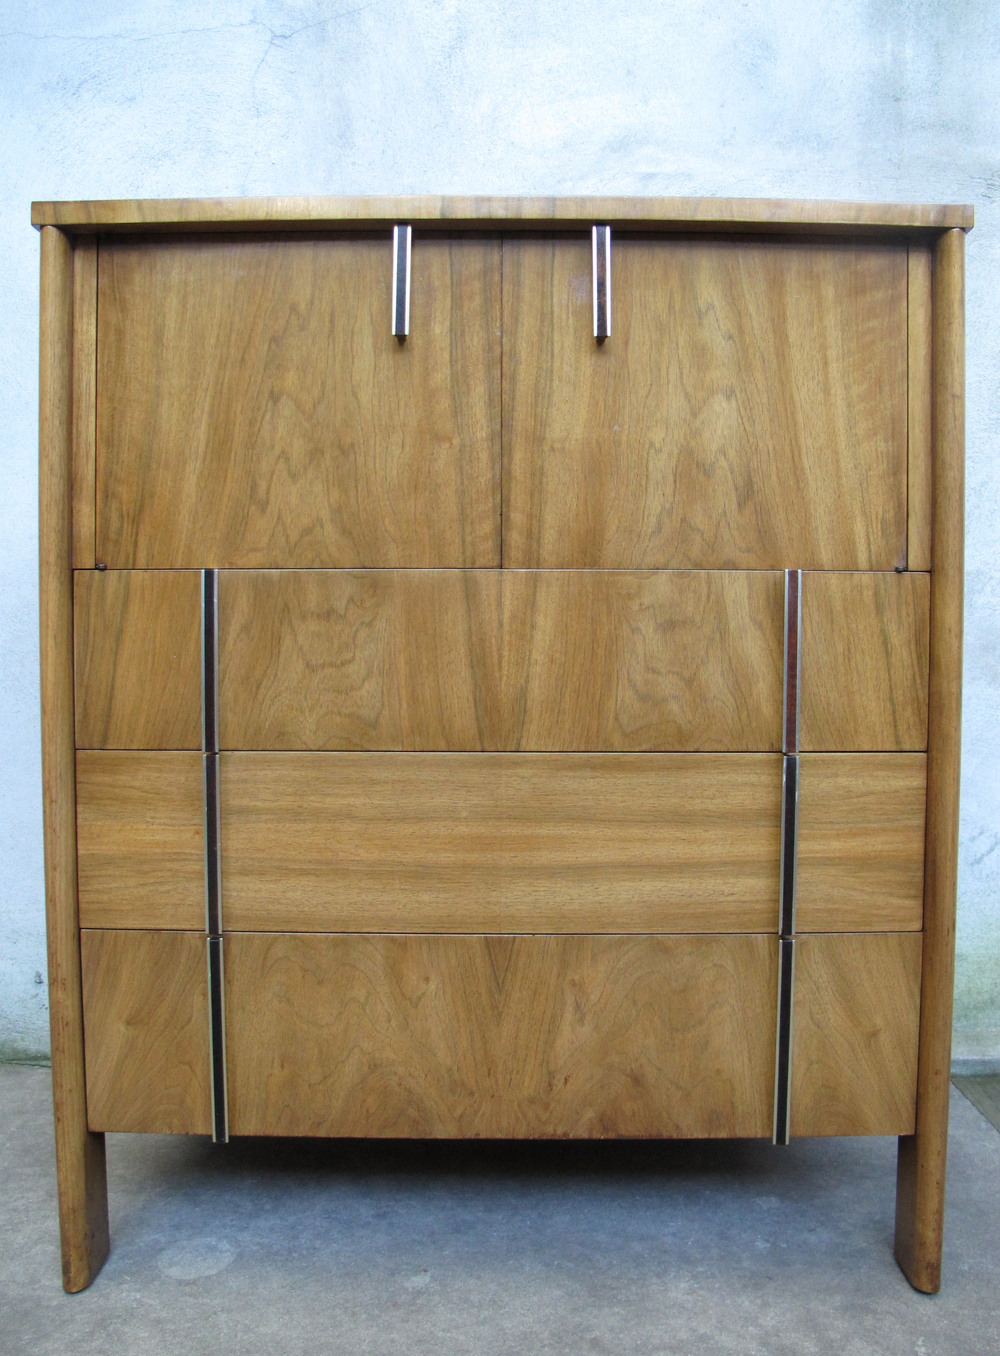 MID CENTURY WIDDICOMB WALNUT TALL DRESSER BY DALE FORD